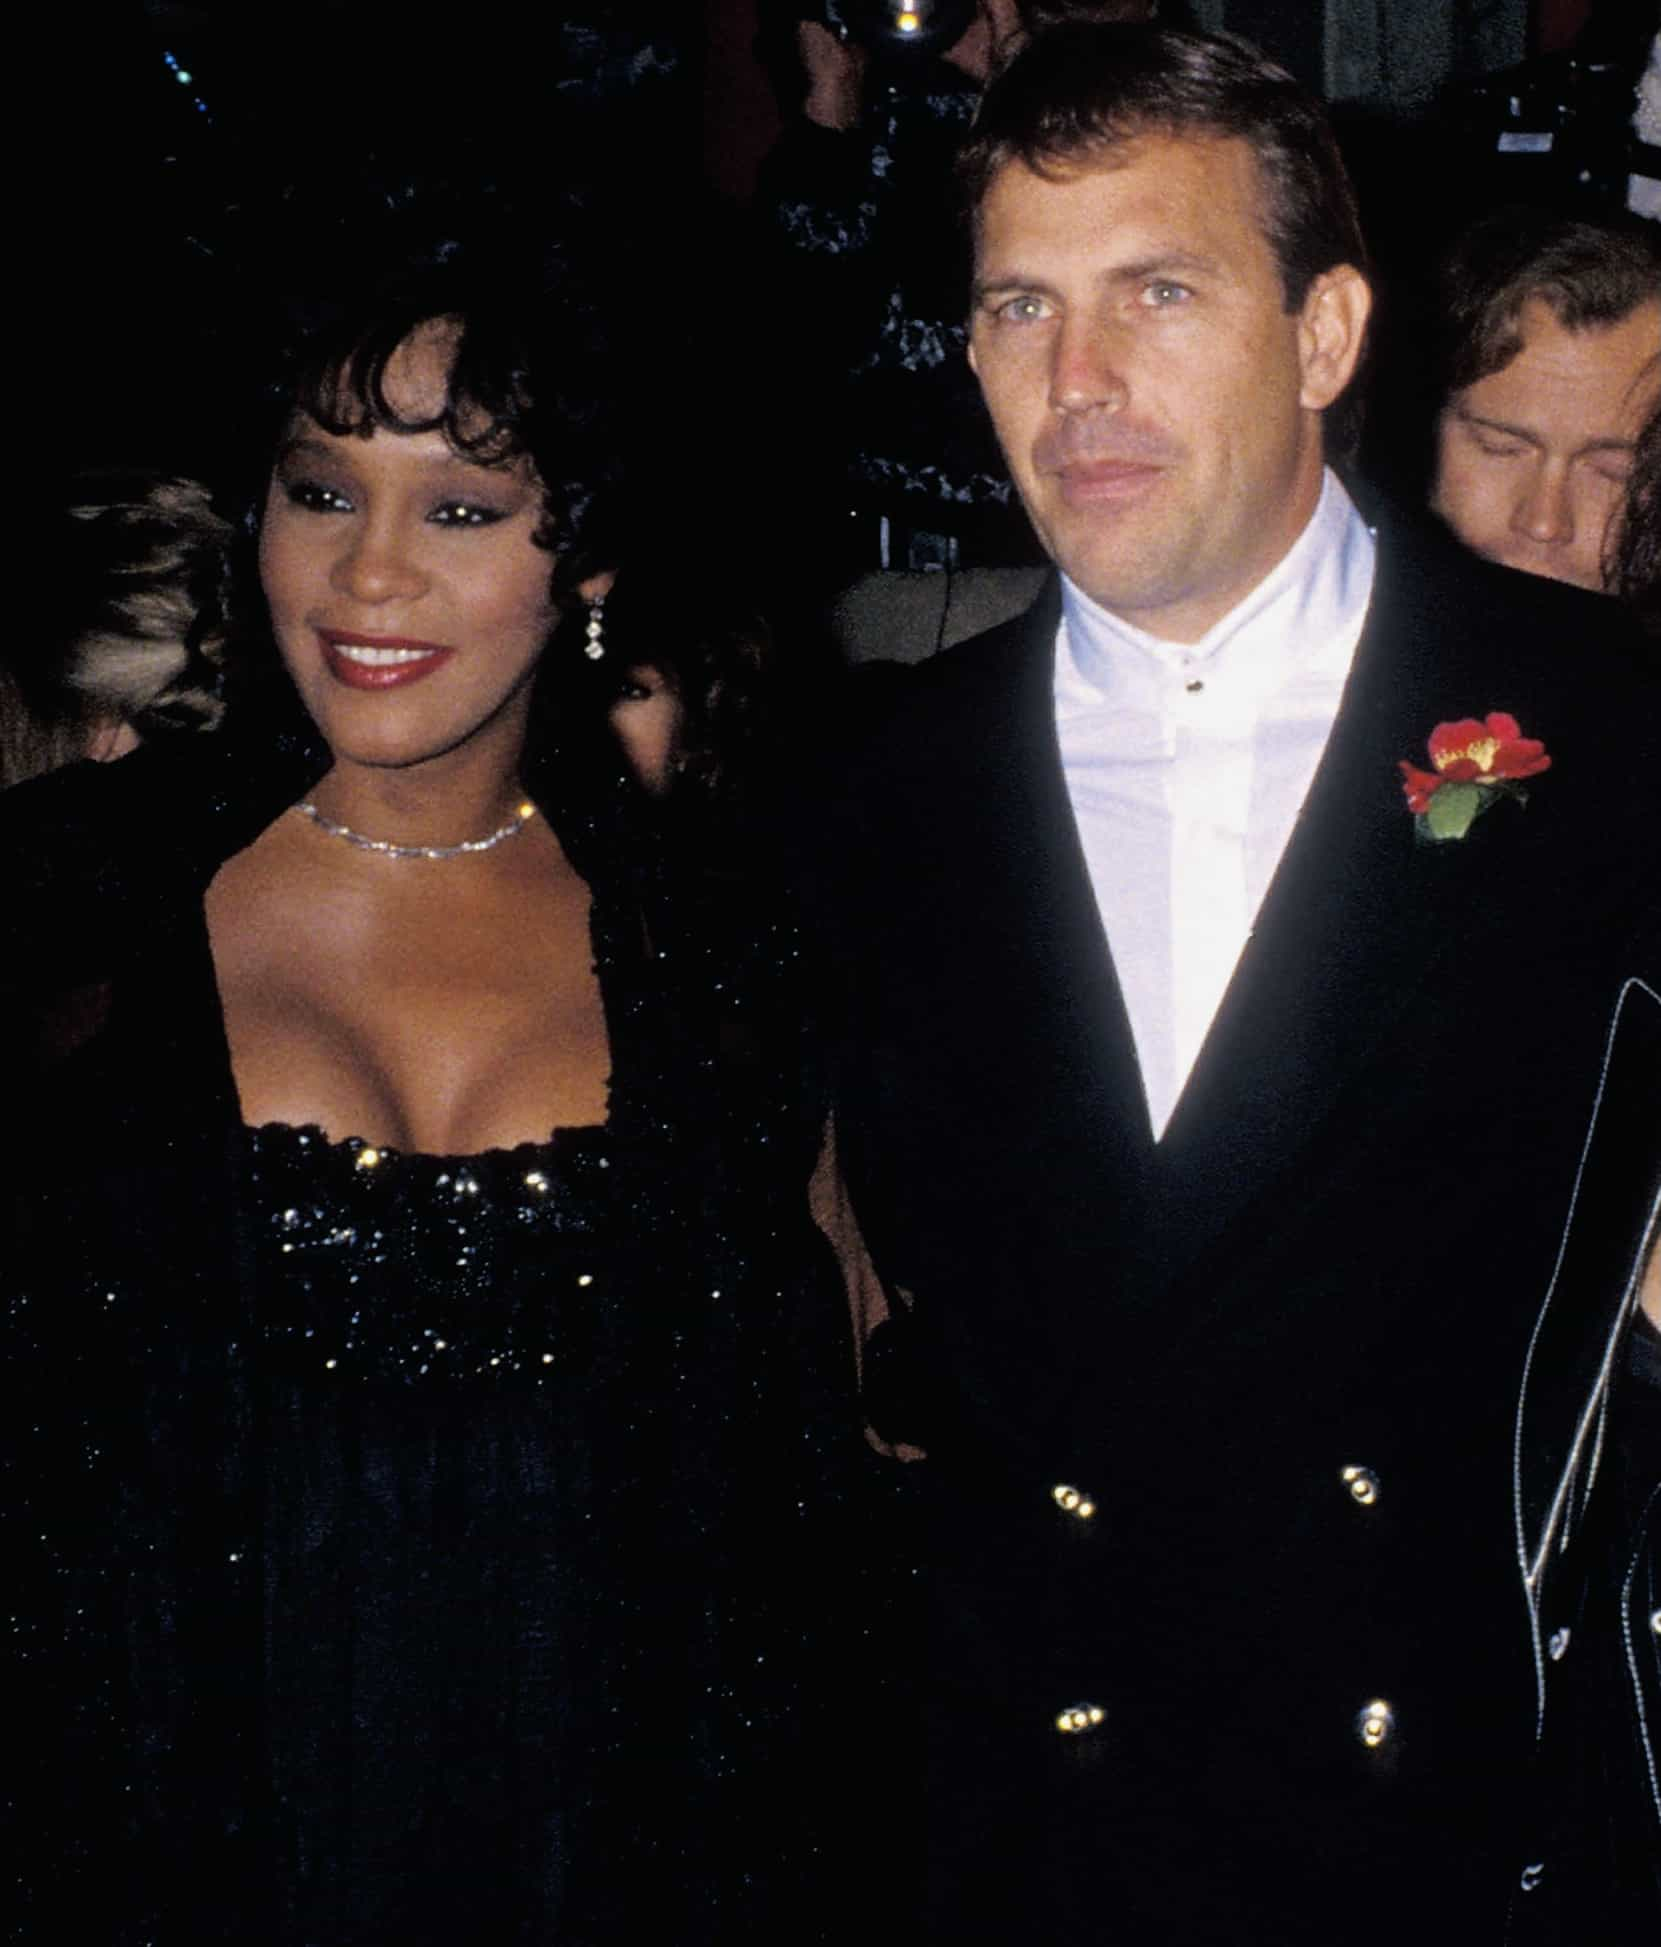 Whitney Houston and Kevin Costner - The Bodyguard